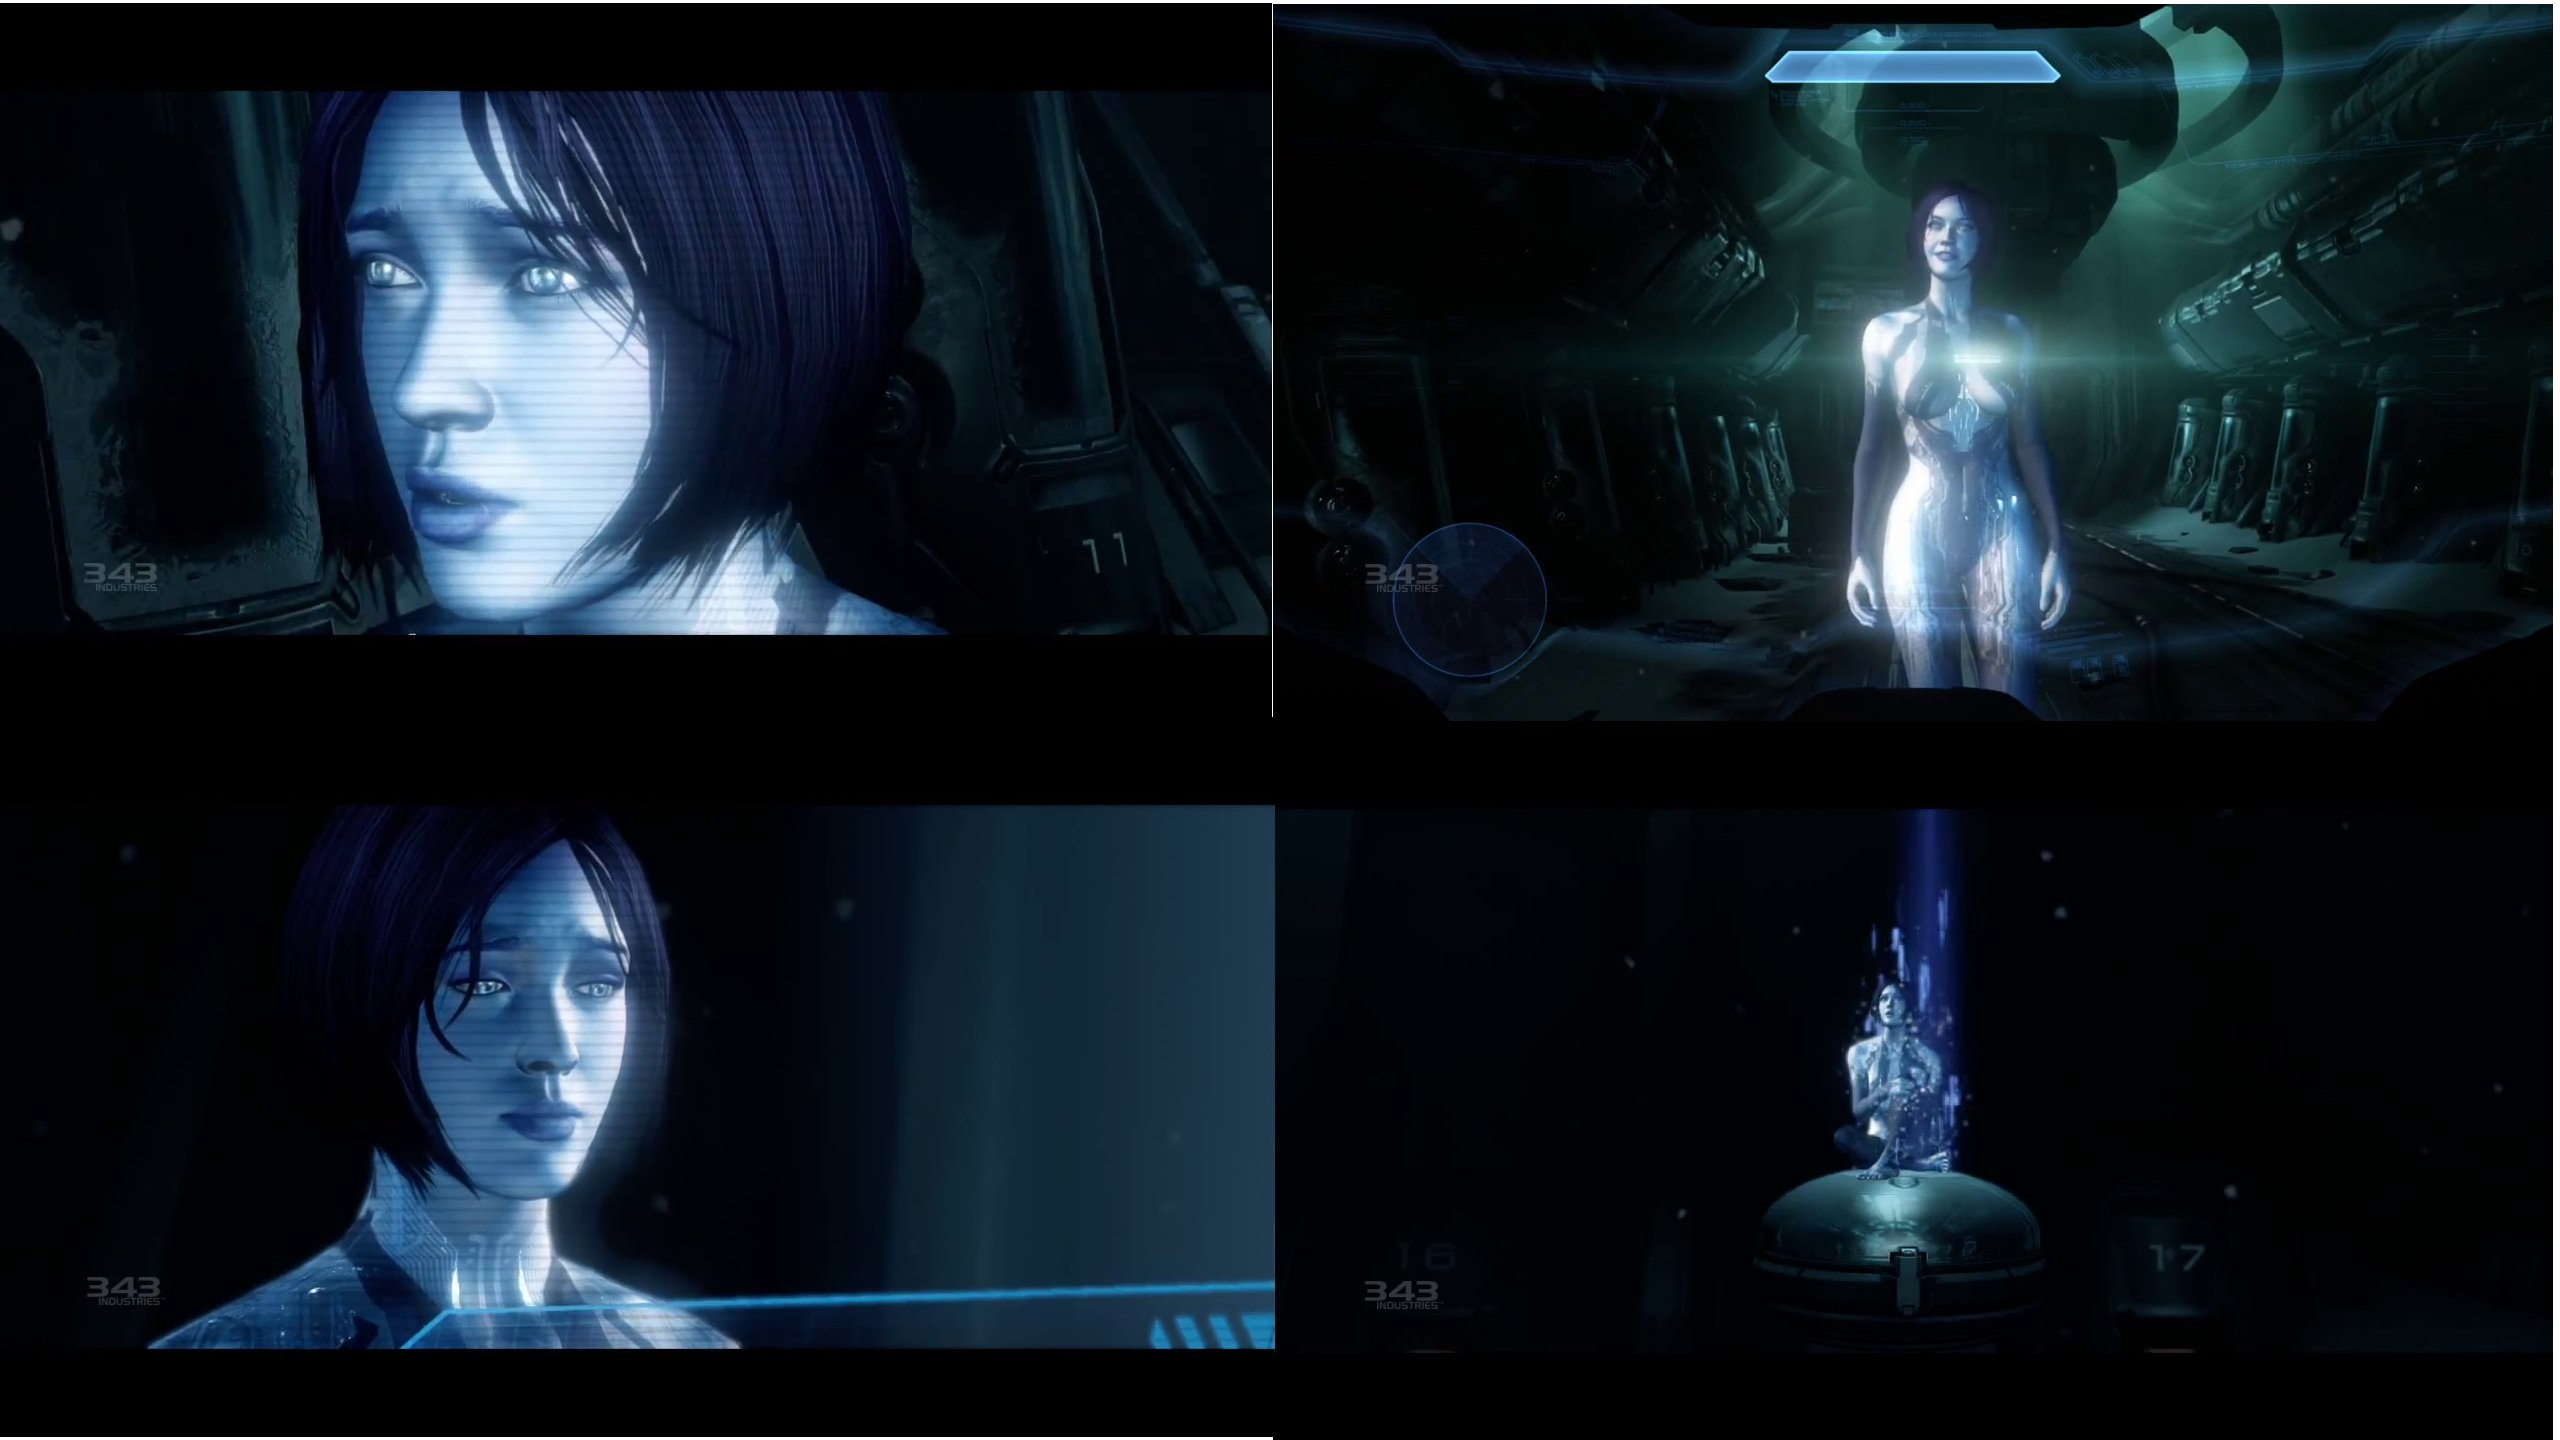 Halo 4 Cortana Images Crazy Gallery 2560x1440